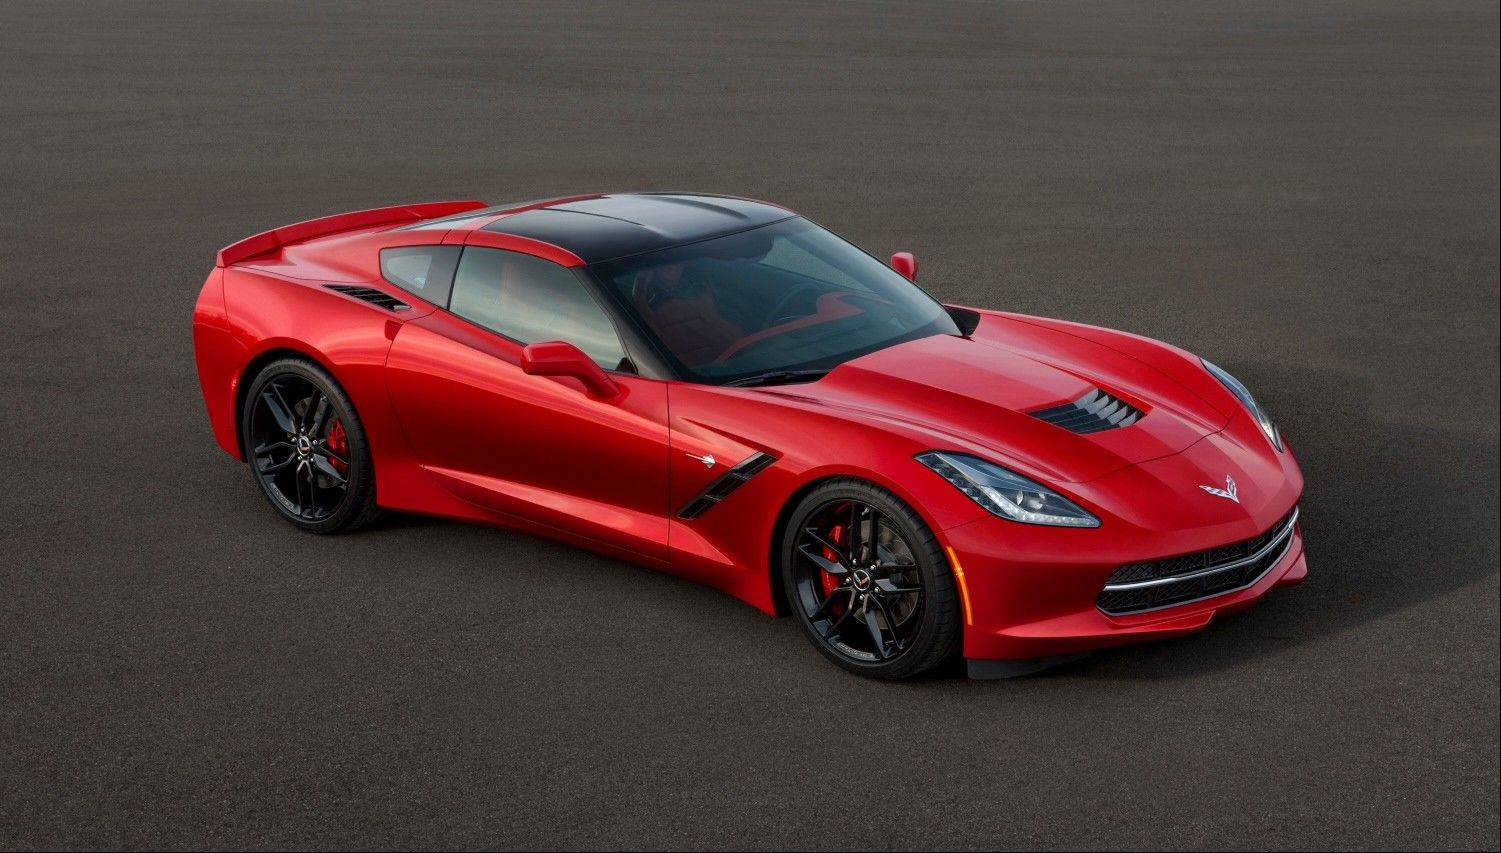 This image provided by General Motors shows the all-new 2014 Chevrolet Corvette Stingray. General Motors unveiled the revamped Corvette, the first new version of the iconic sports car in nine years, Sunday in Detroit.